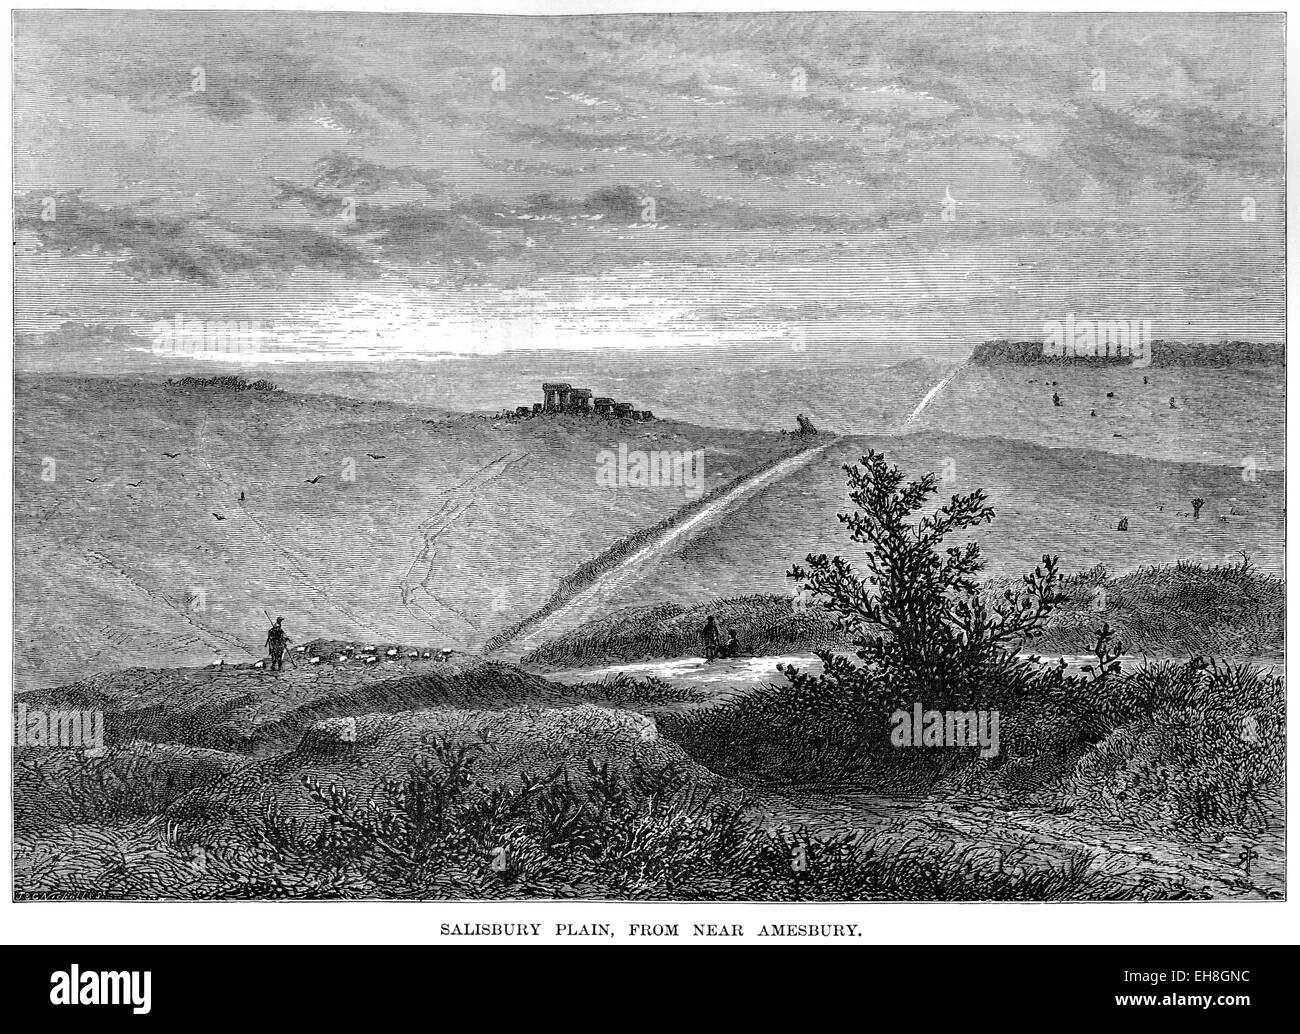 An engraving of Salisbury Plain, from near Amesbury scanned at high resolution from a book printed in 1880. - Stock Image